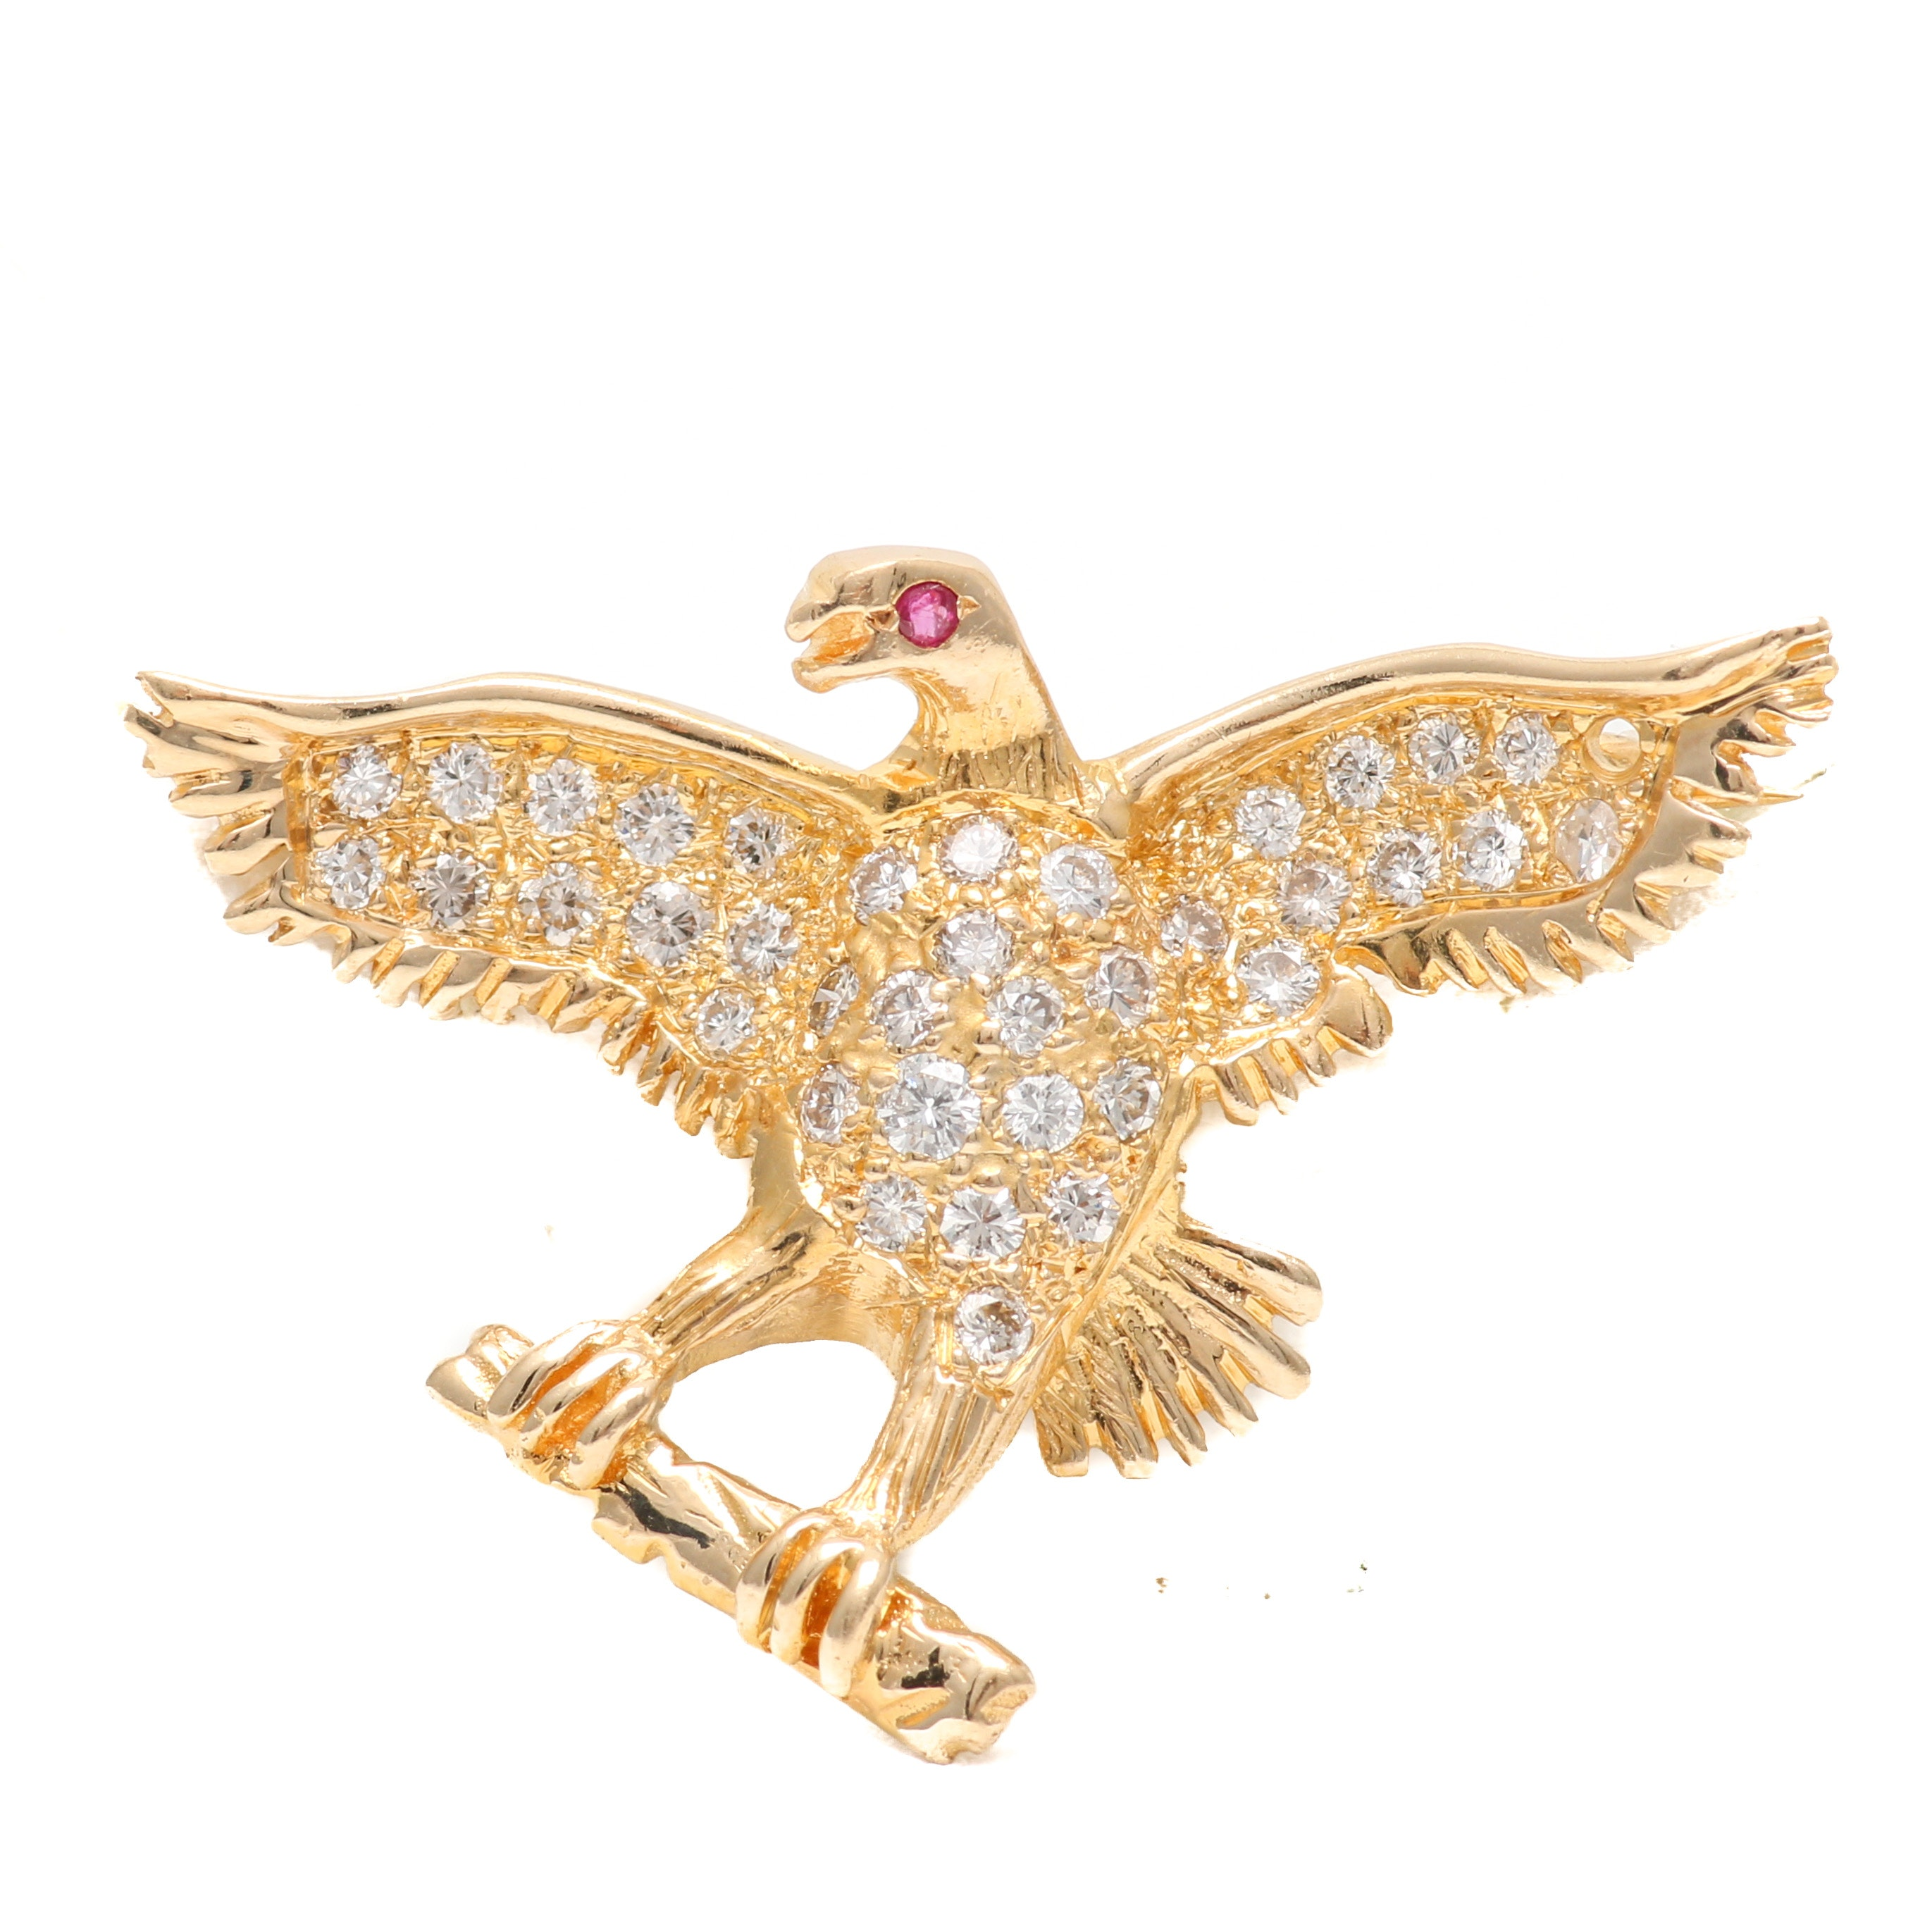 14K Yellow Gold Diamond and Ruby Eagle Brooch